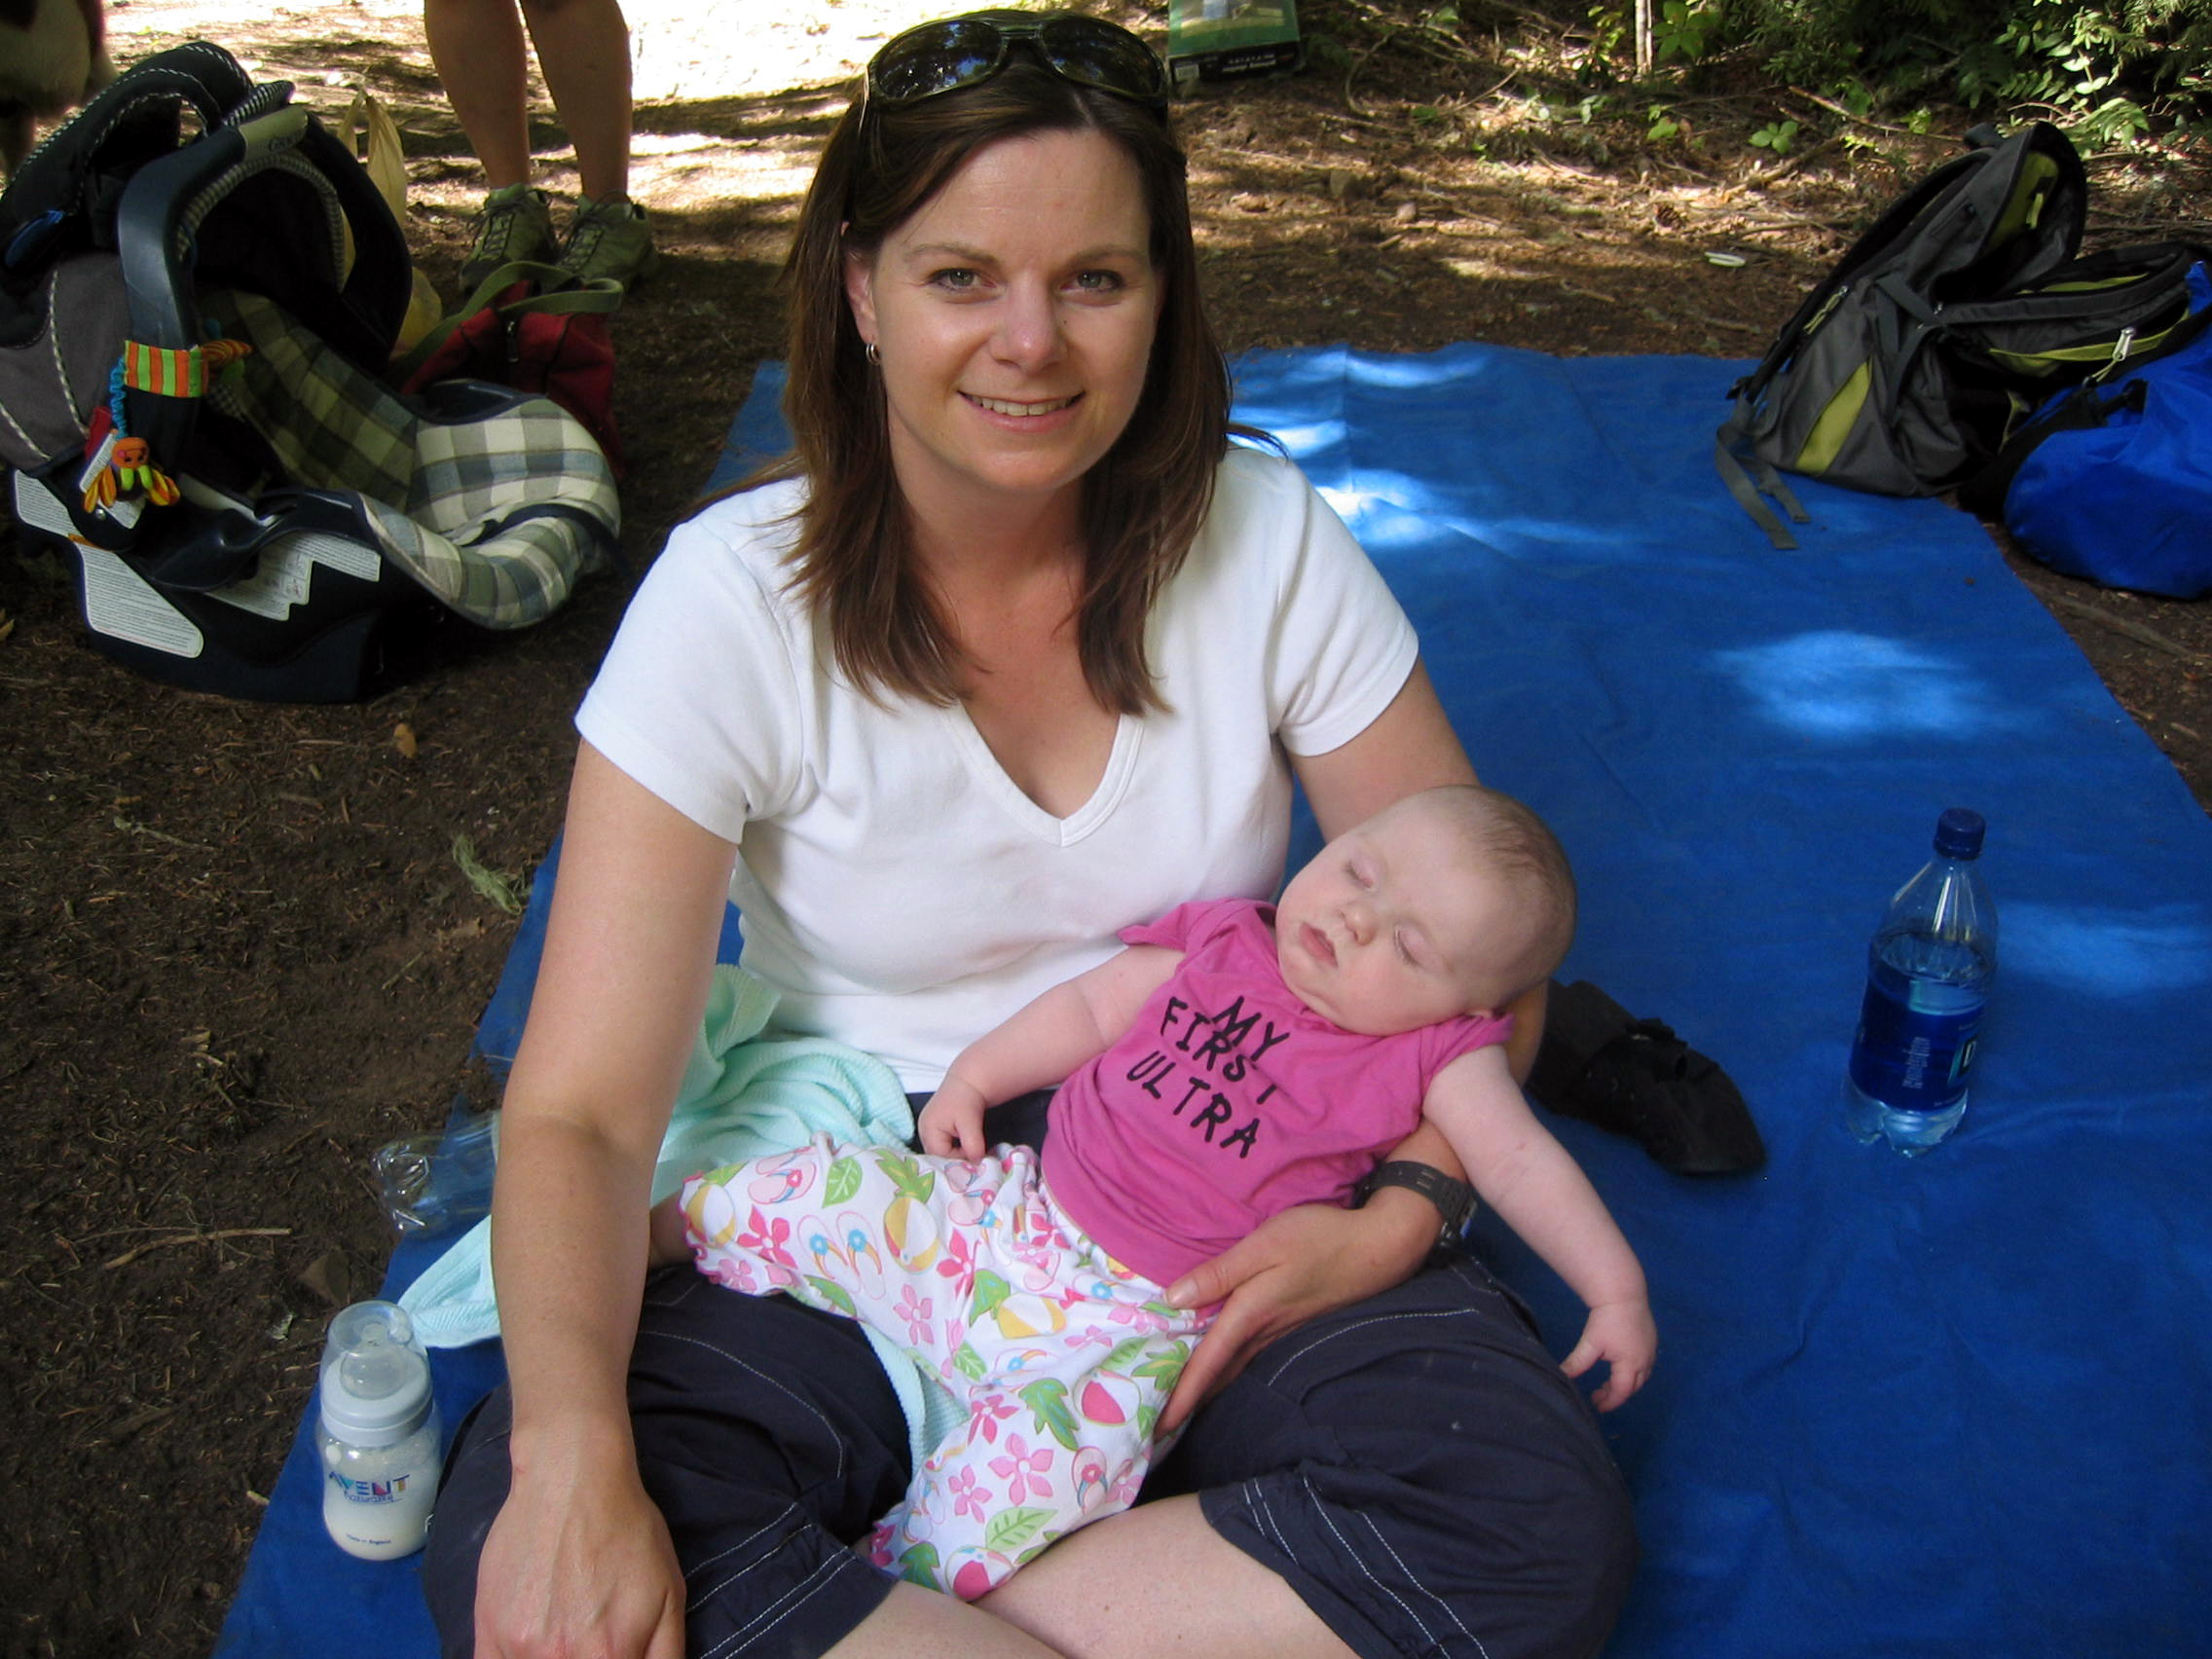 Keiths wife Allison & baby Kelly wait for Keith at the last aid station